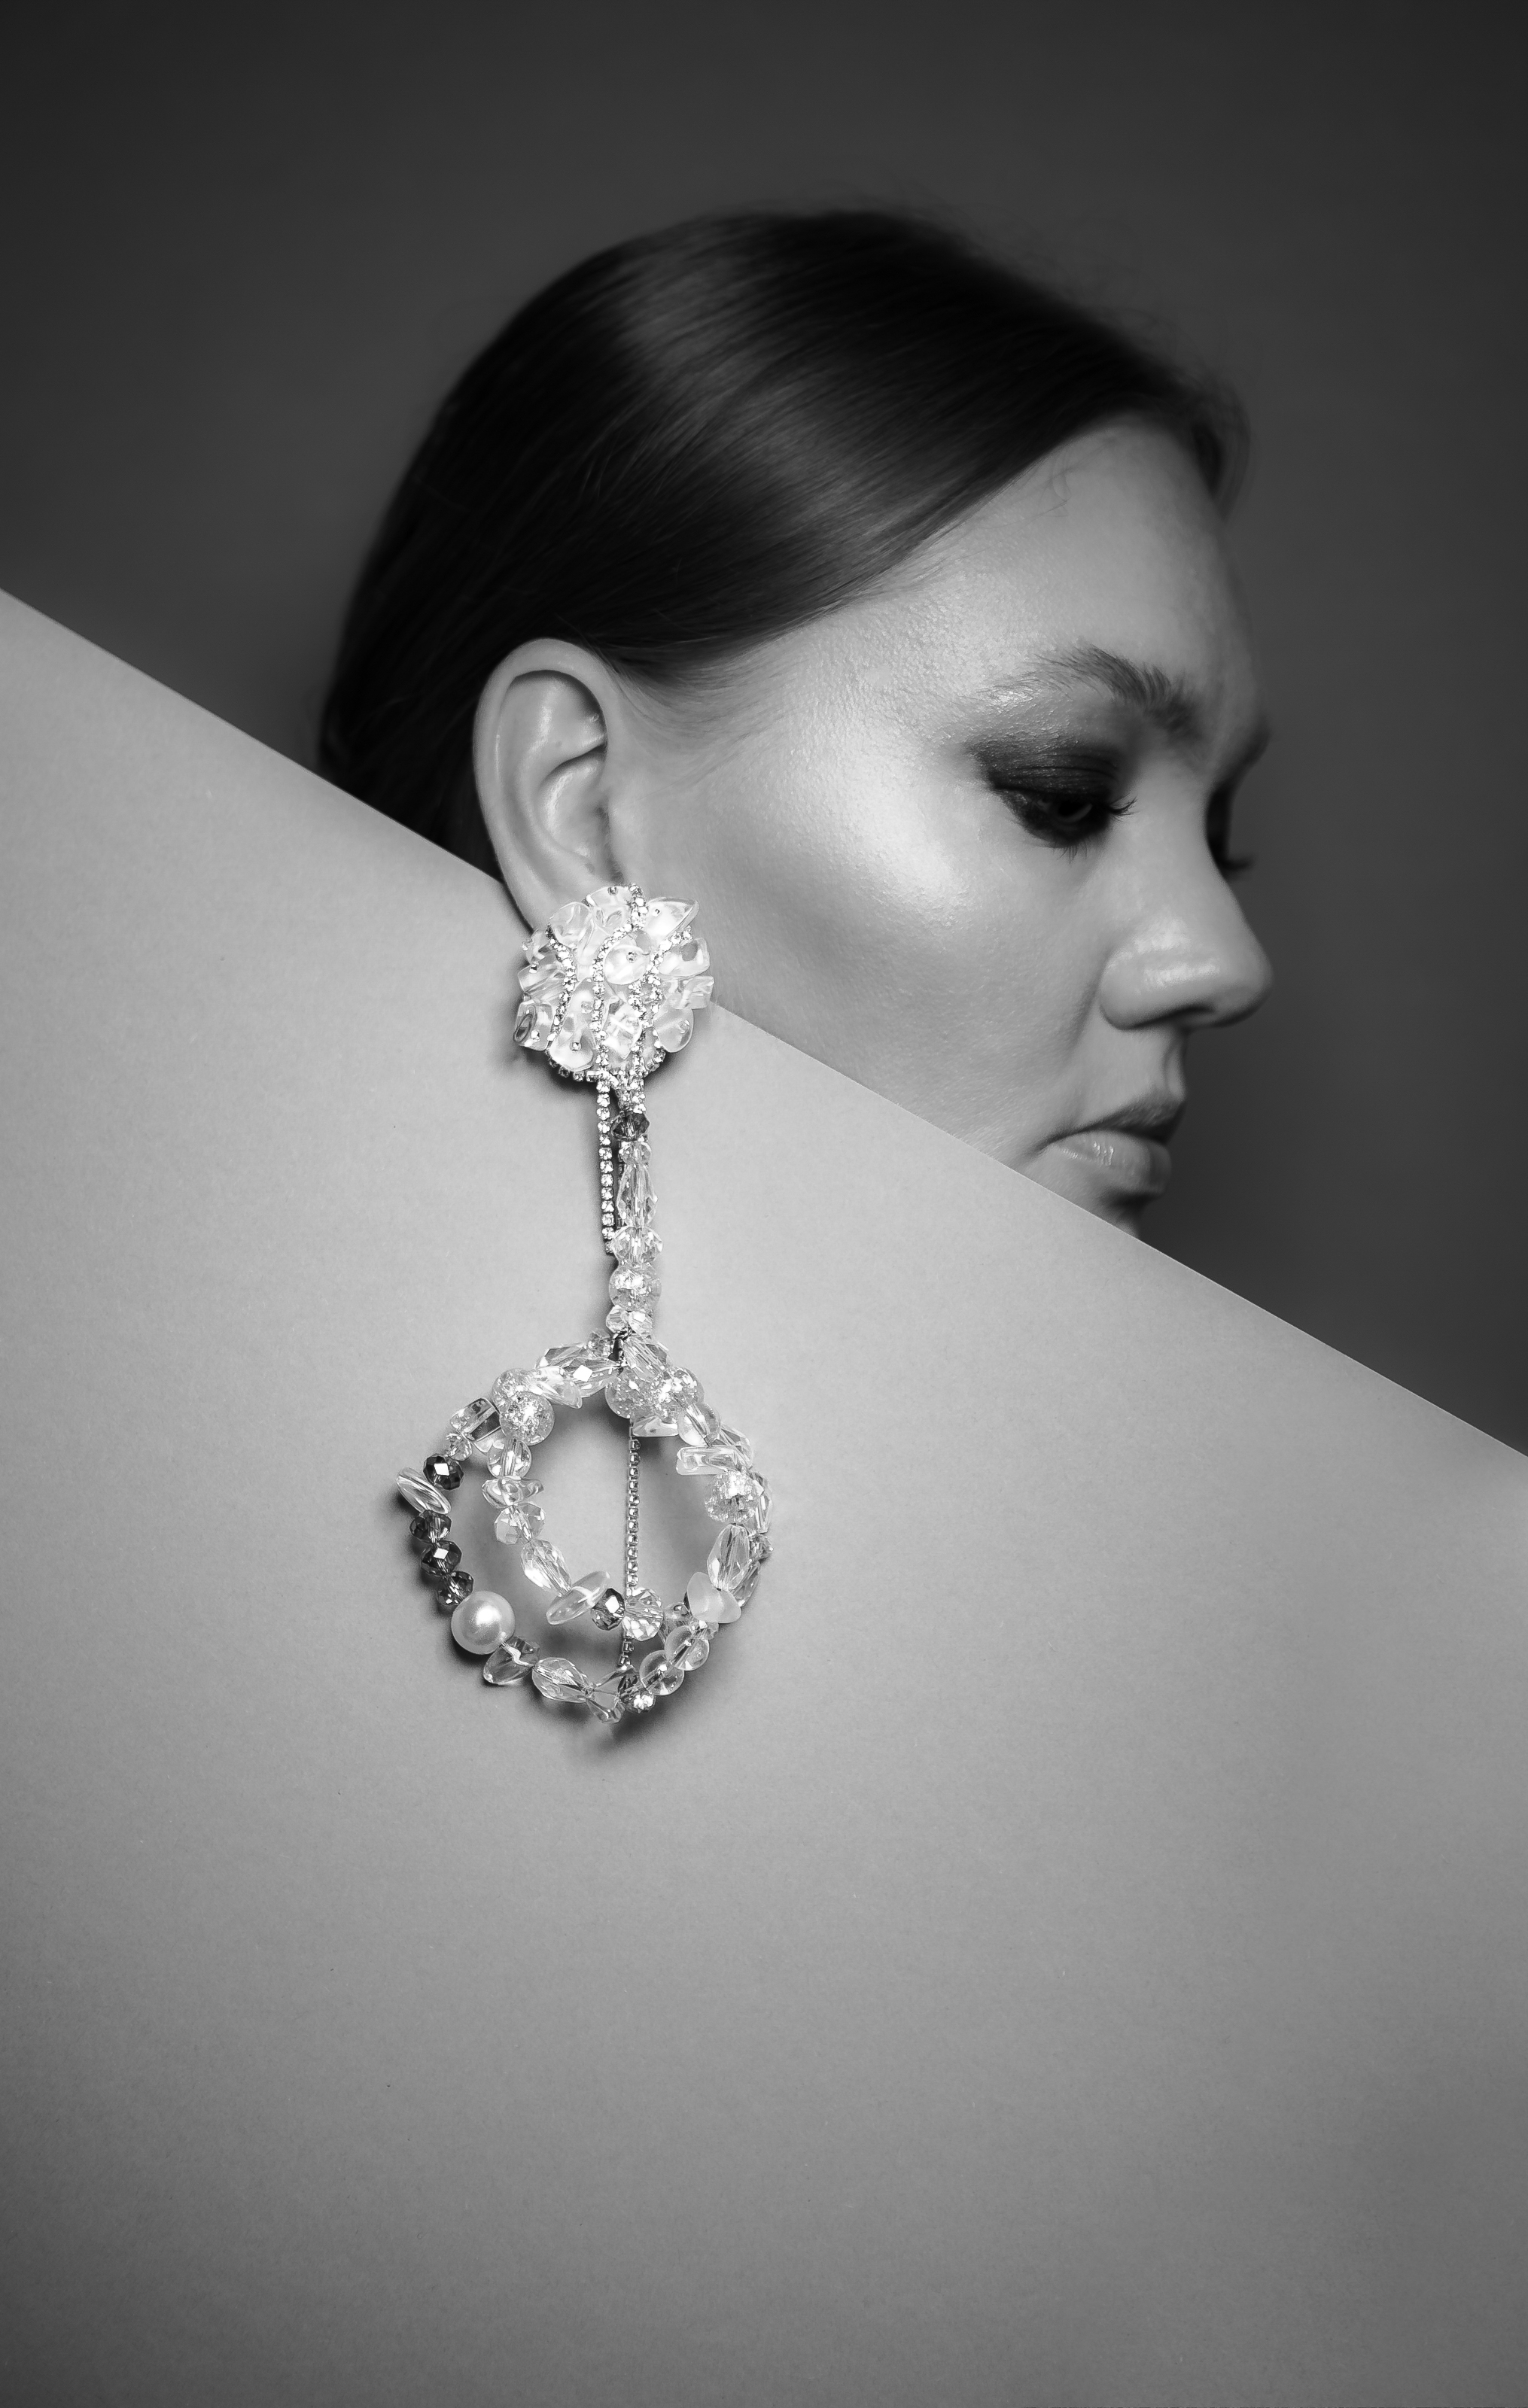 Statement Earrings Lada Legina Jewelry.jpg